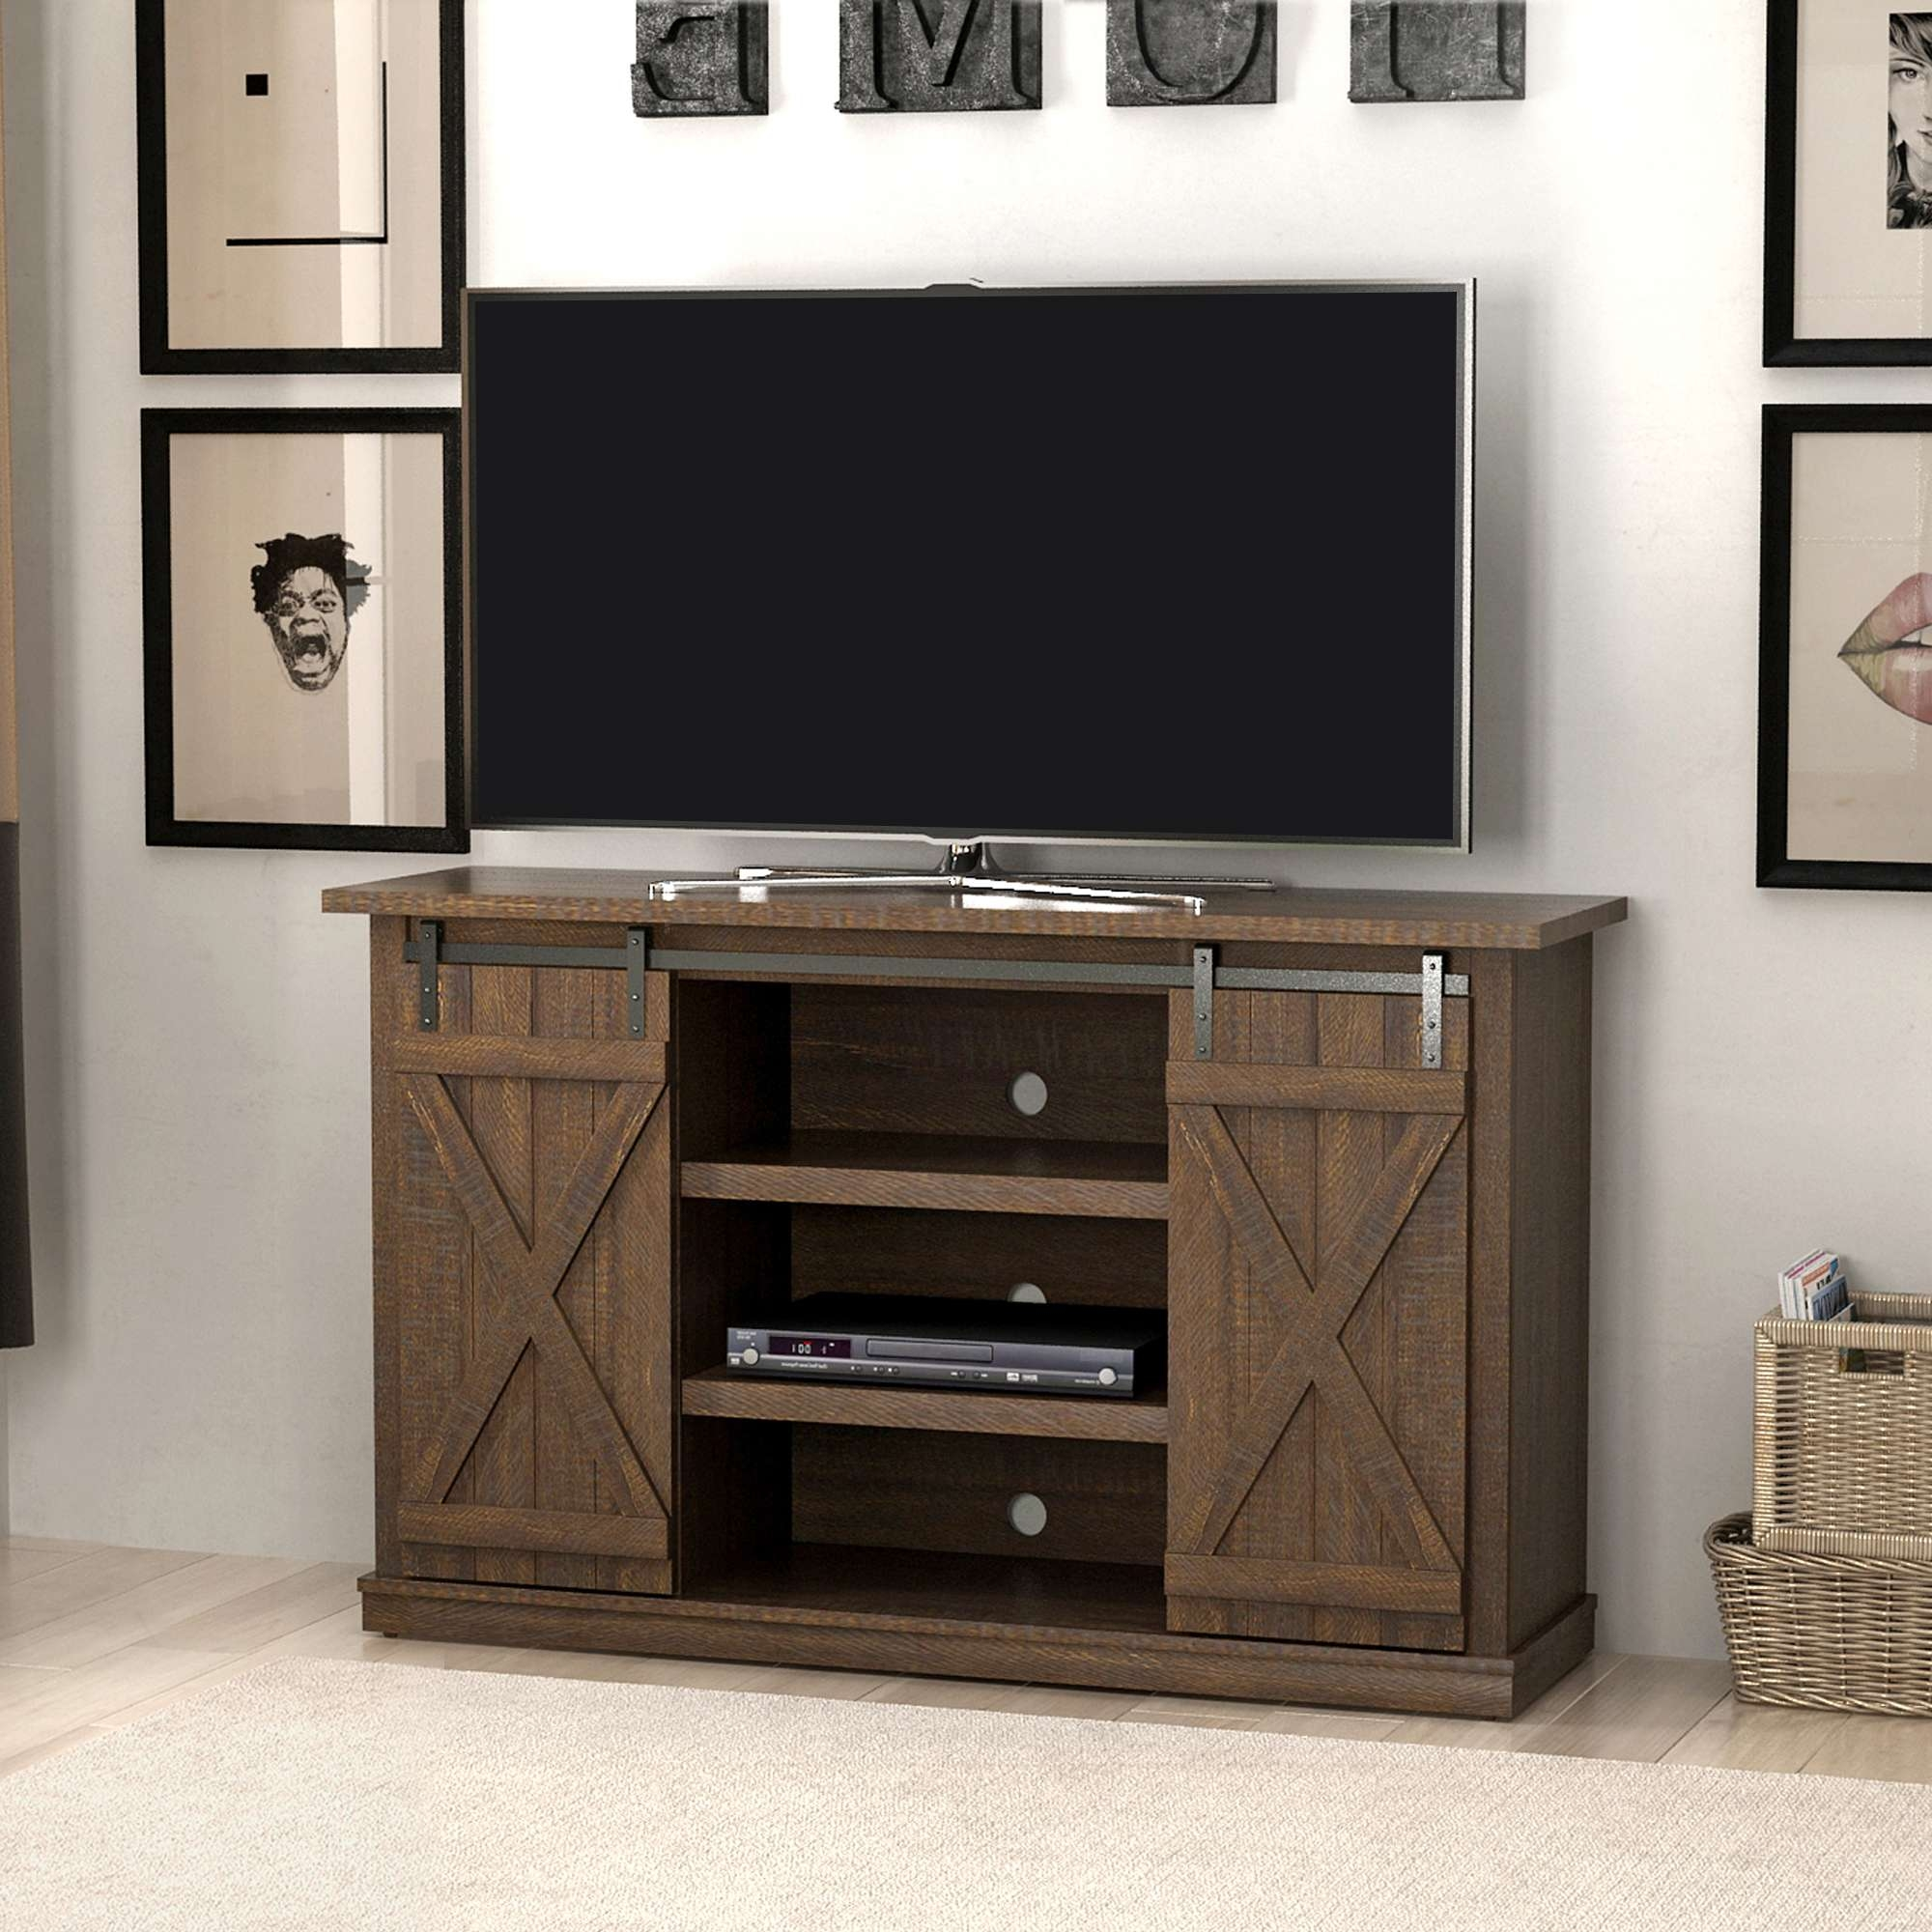 Tv Stands – Walmart With Regard To Tv Stands 40 Inches Wide (View 11 of 15)